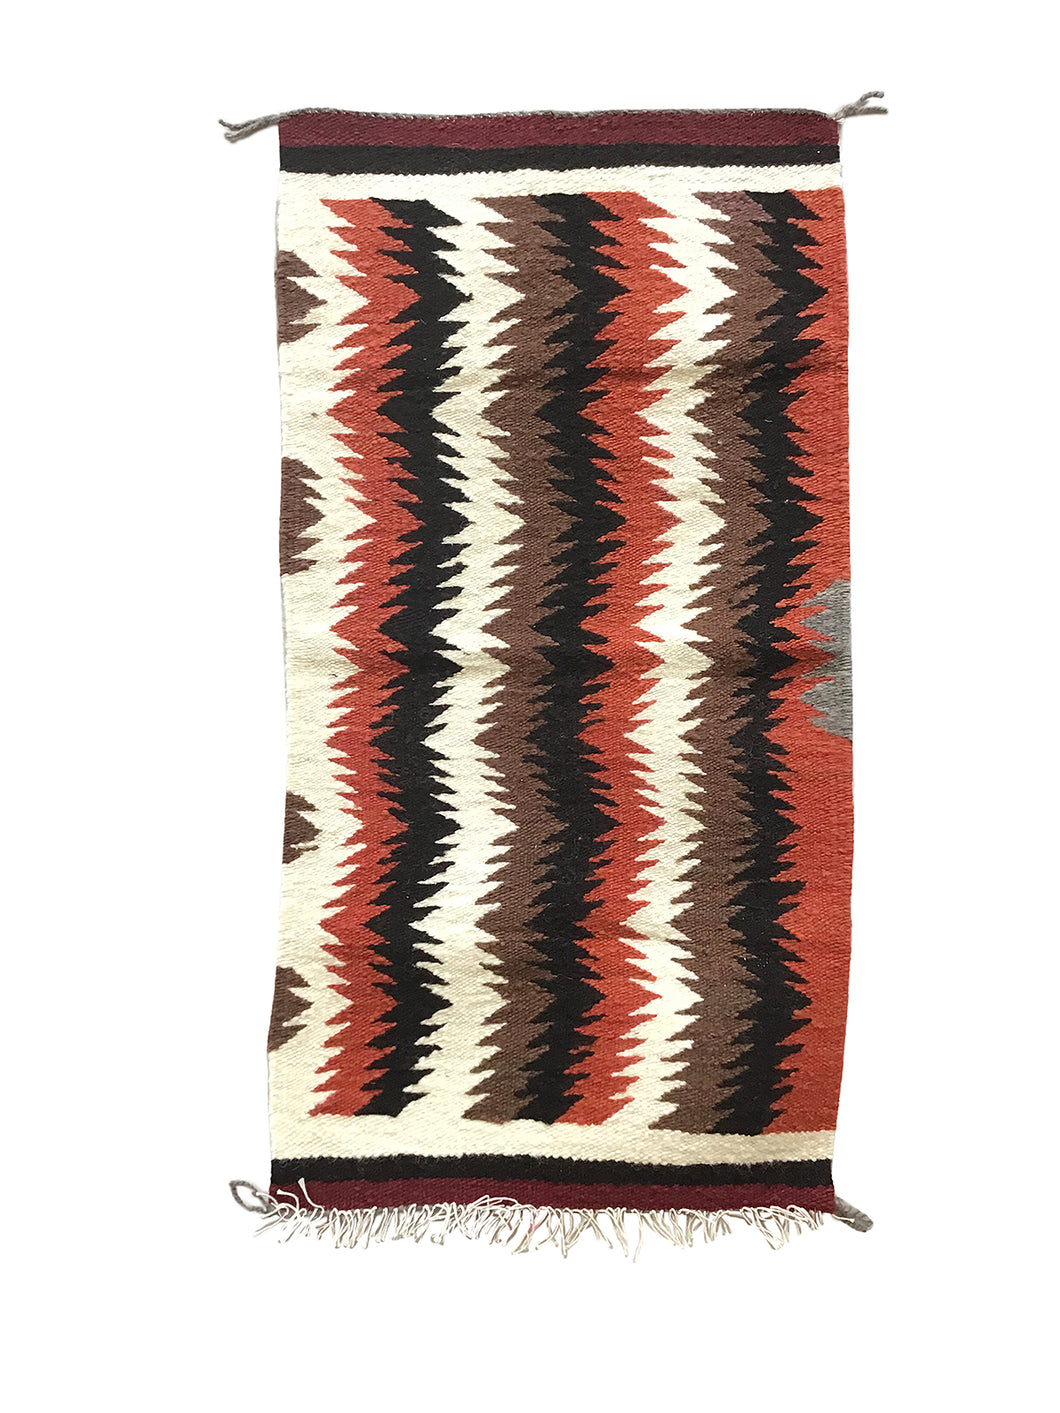 "Gallup Throw Rug, Navajo Handwoven, Wool, Cotton, 35"" x  18"""